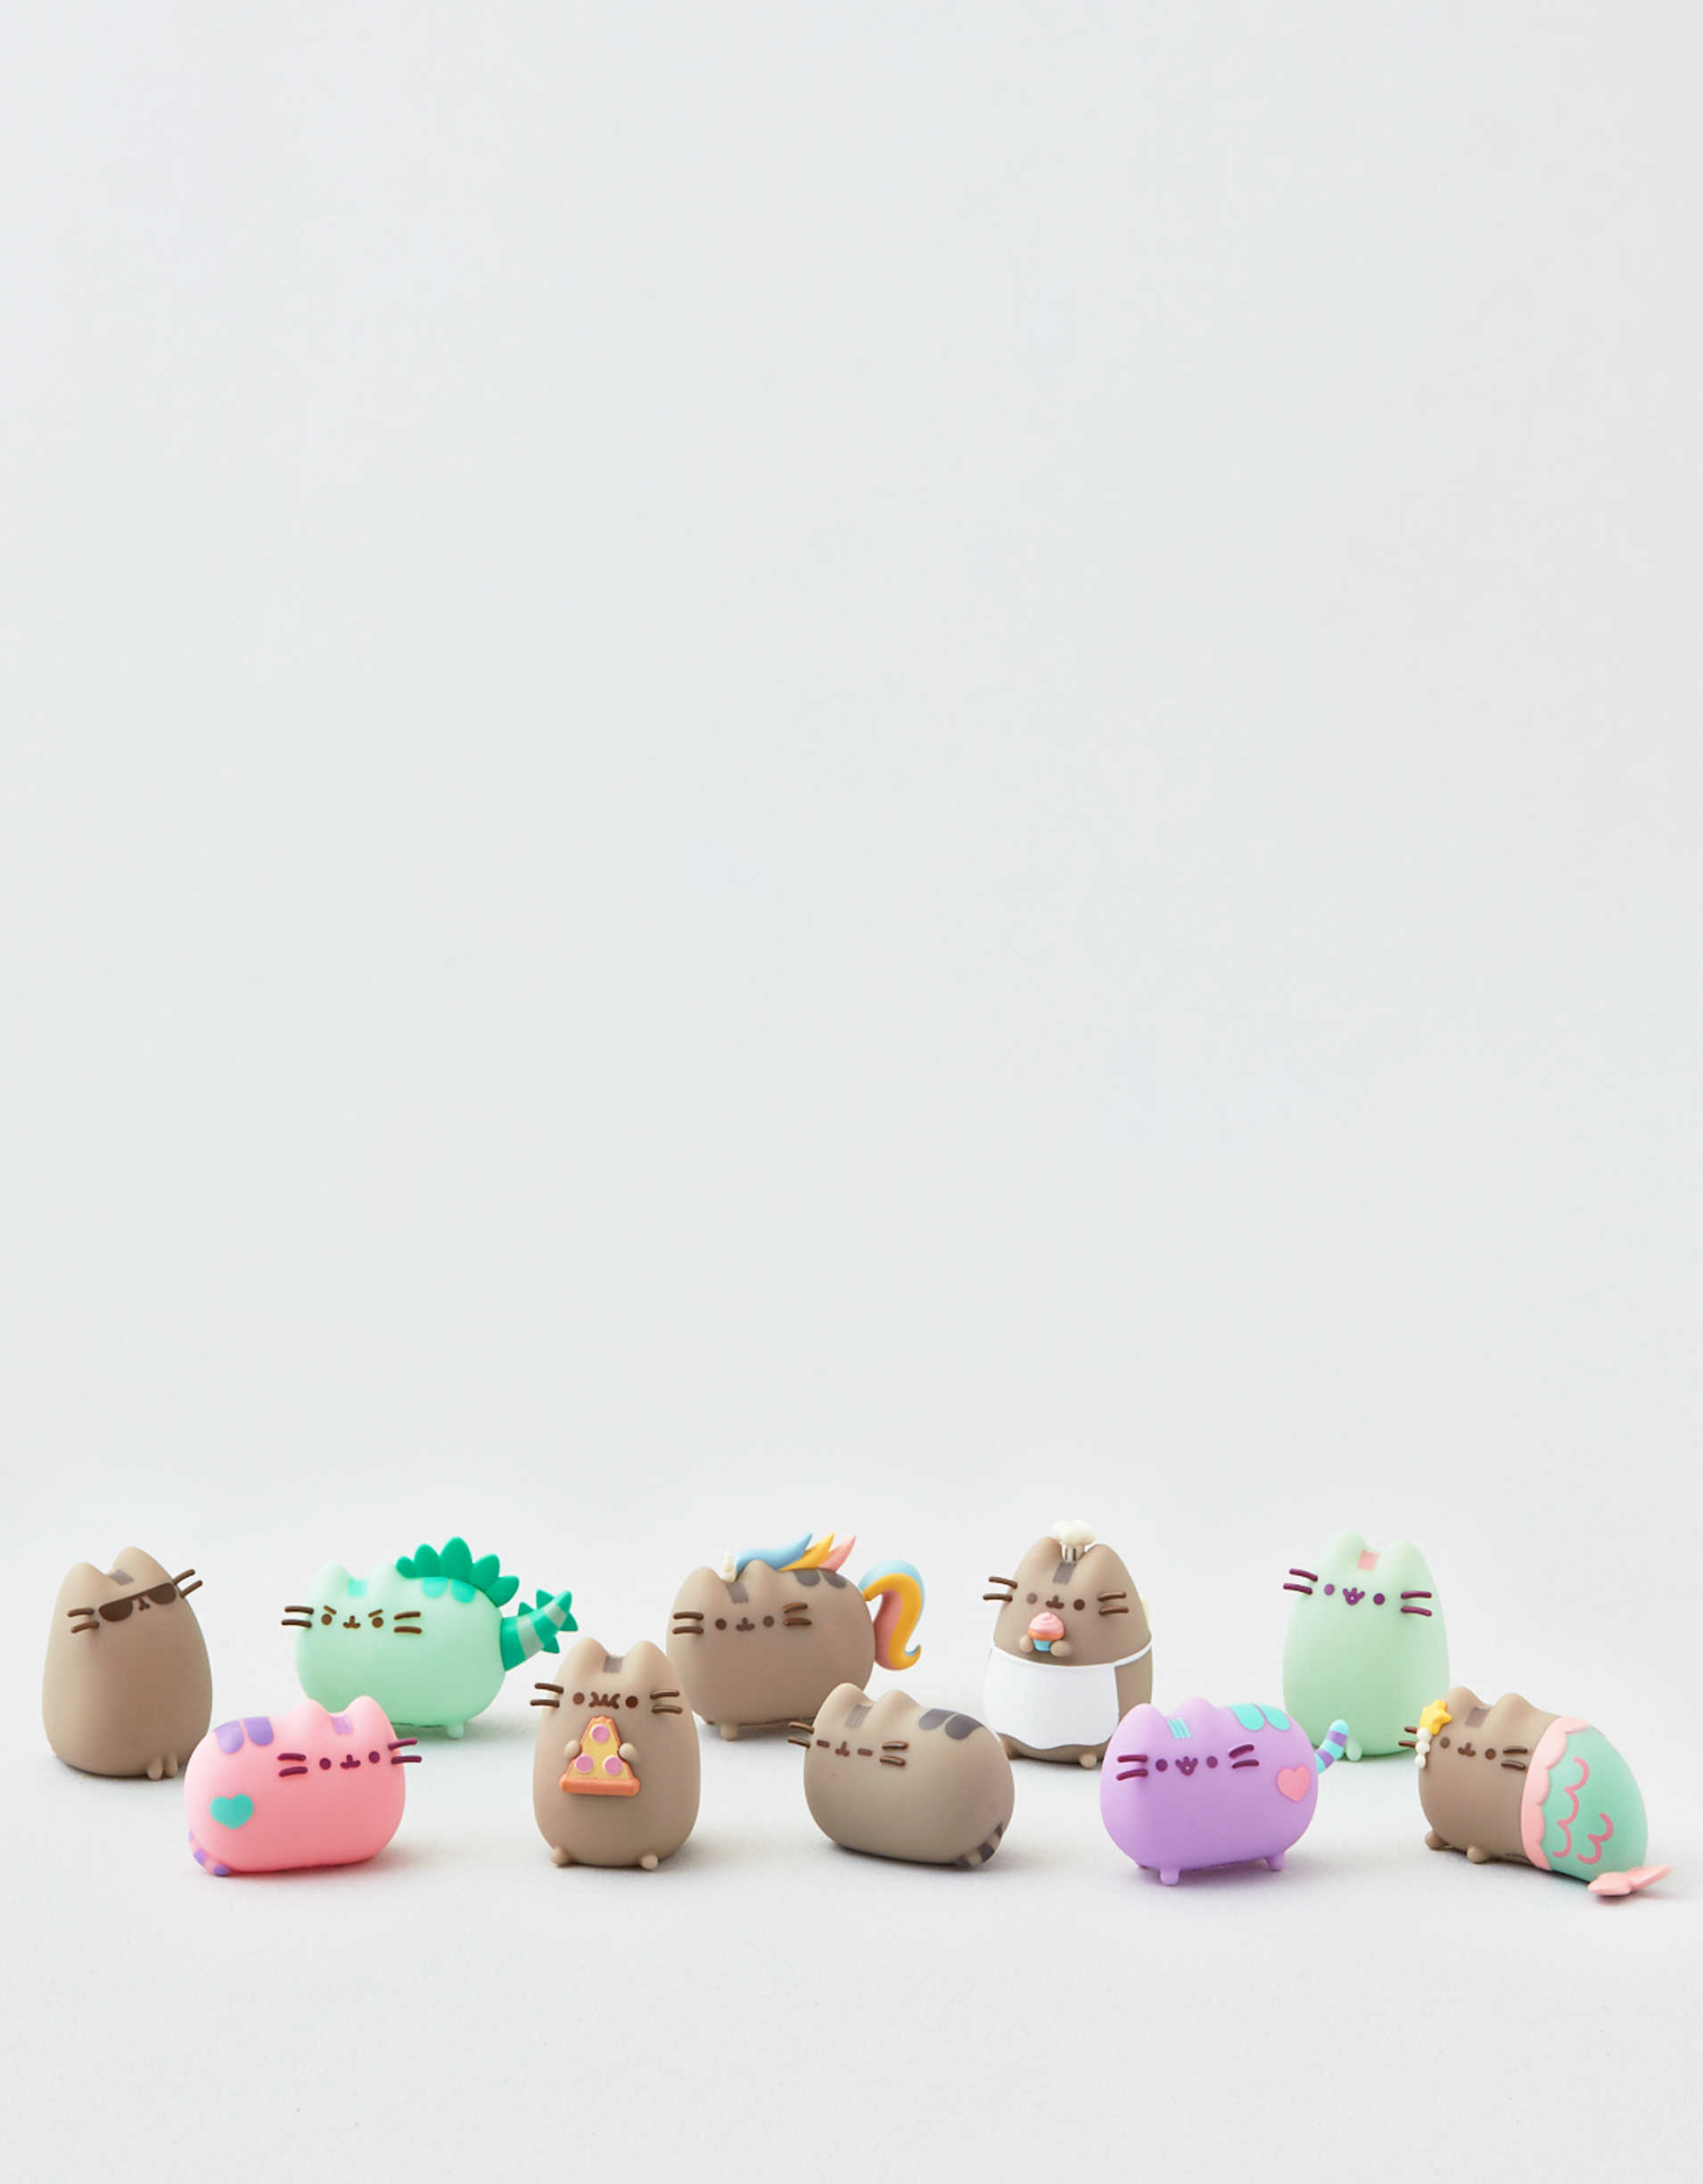 Thumbs Up Pusheen Surprise Mini Figurines